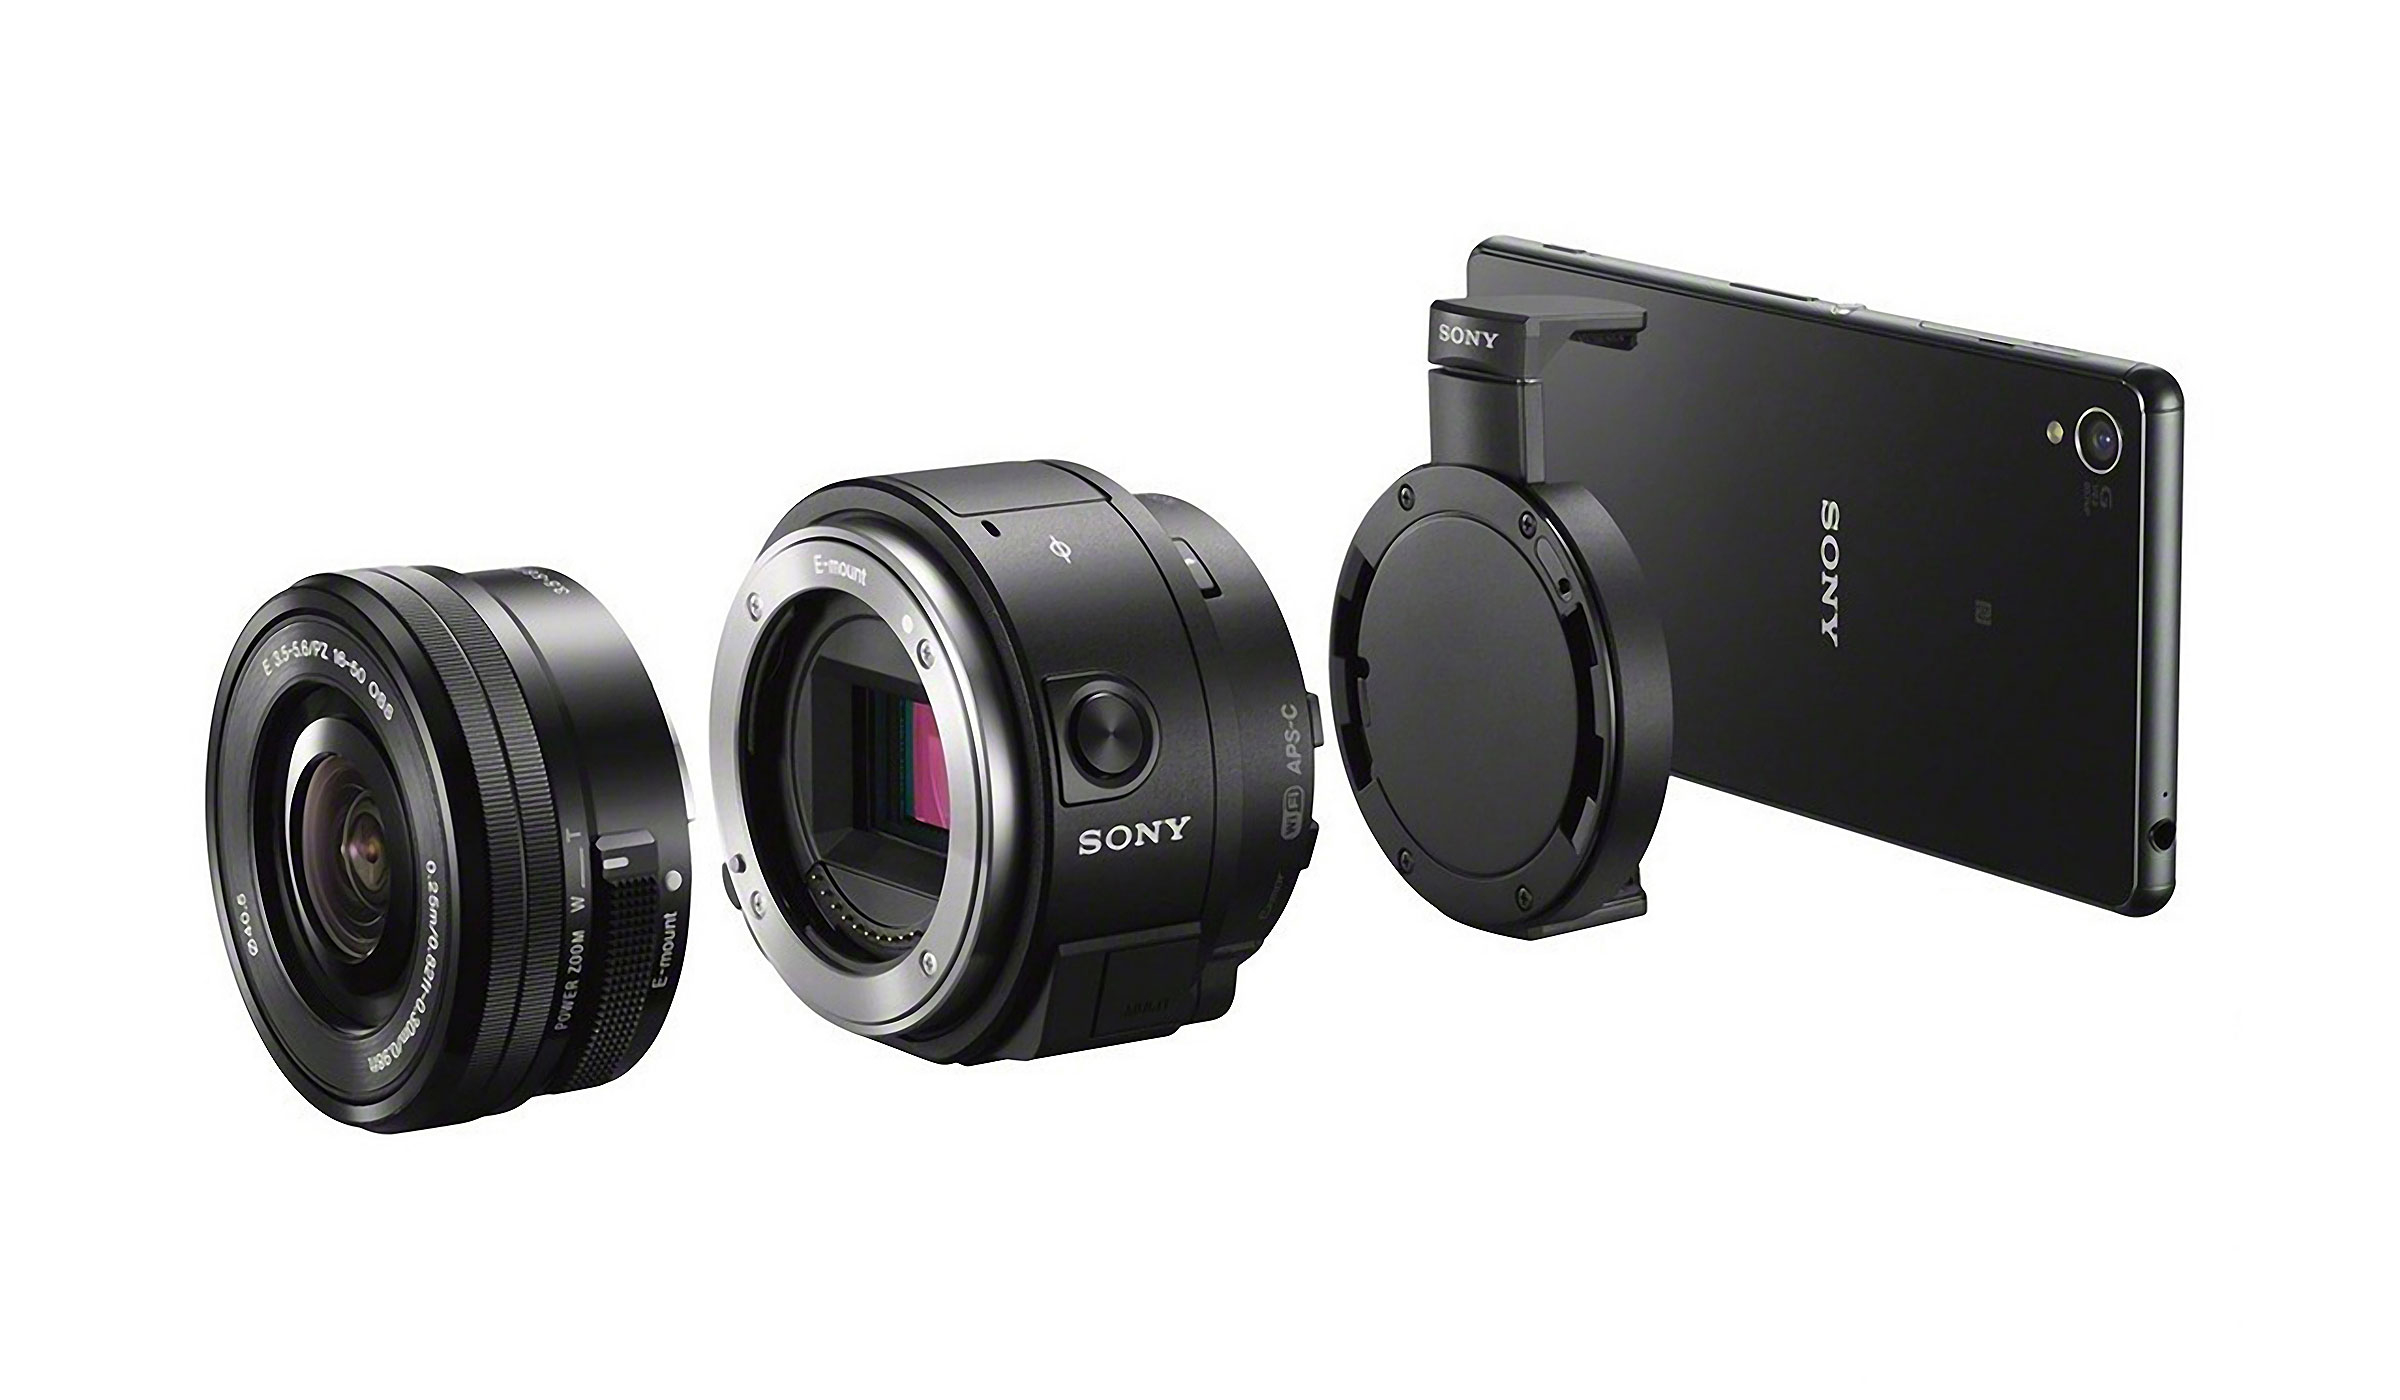 SONY QX1 INTERCHANGEABLE LENS CAMERA